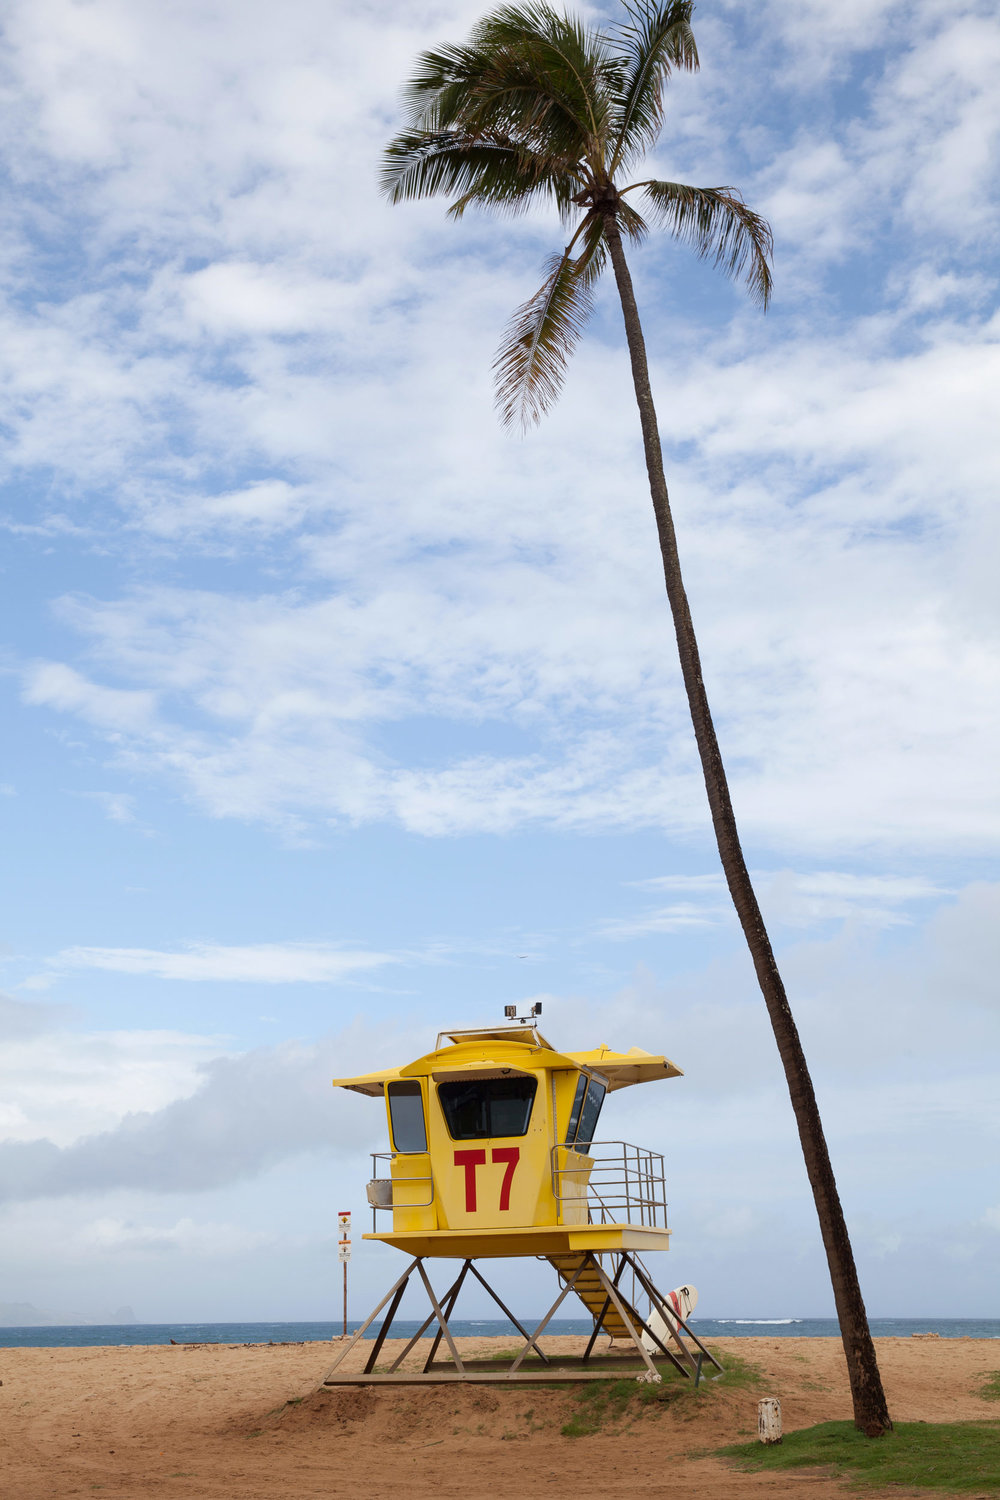 baywatch-Maui-Hawaii.jpg